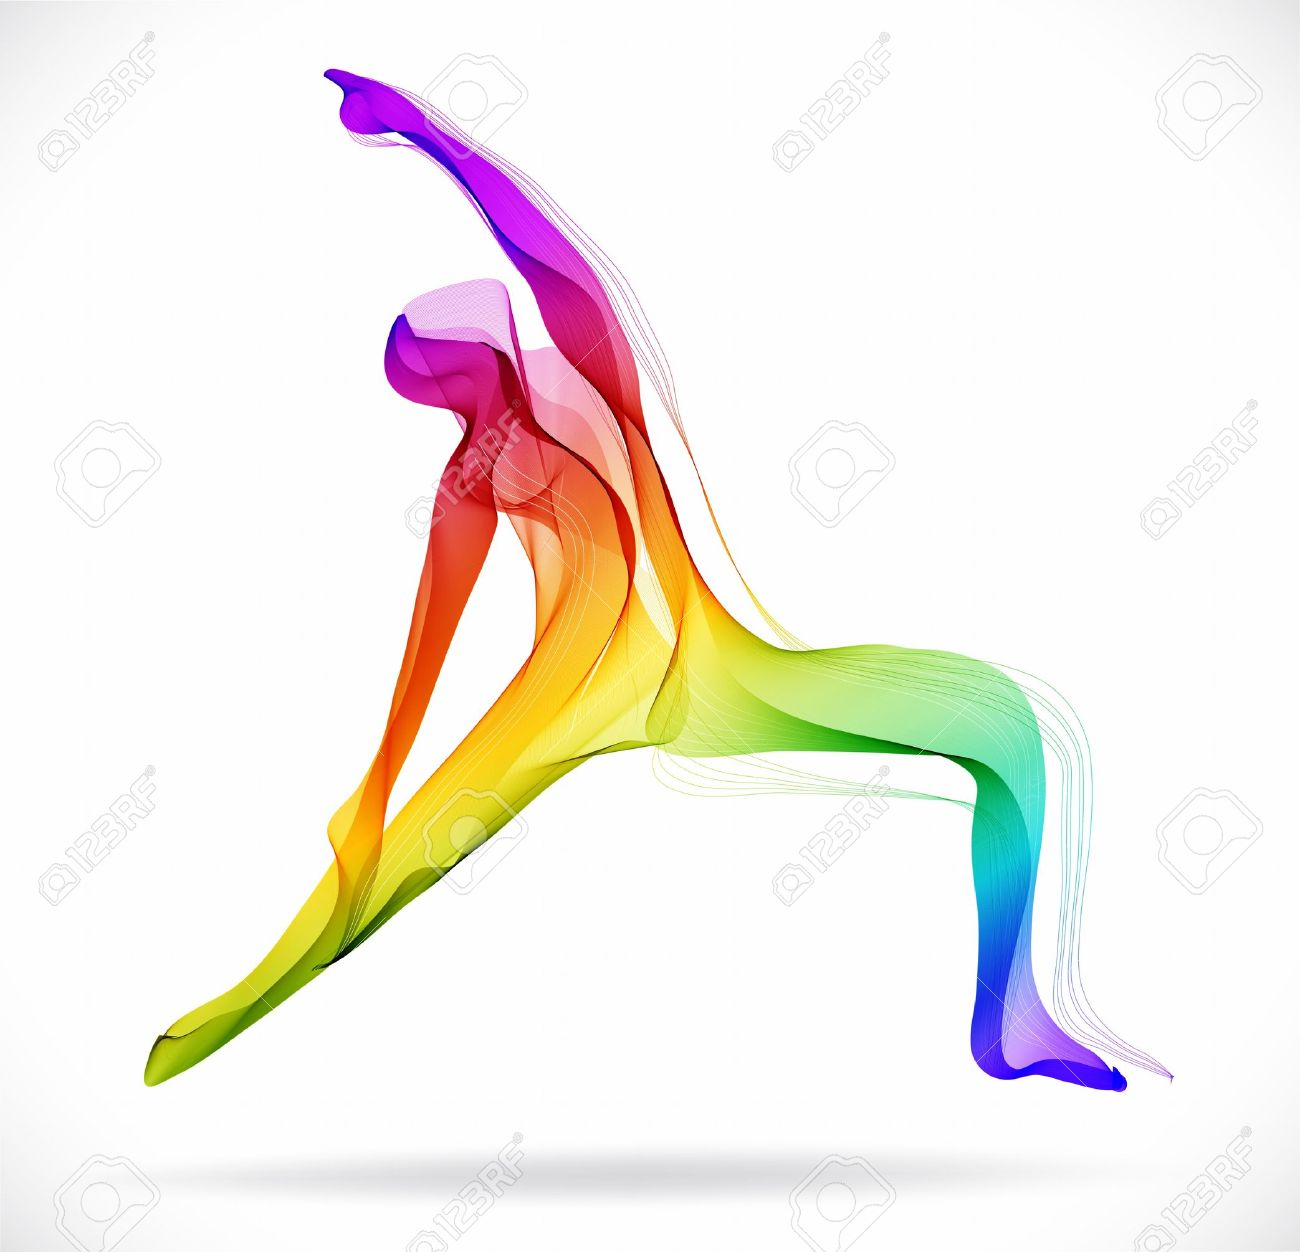 Yoga pose, Abstract color illustration over white background - 34141939